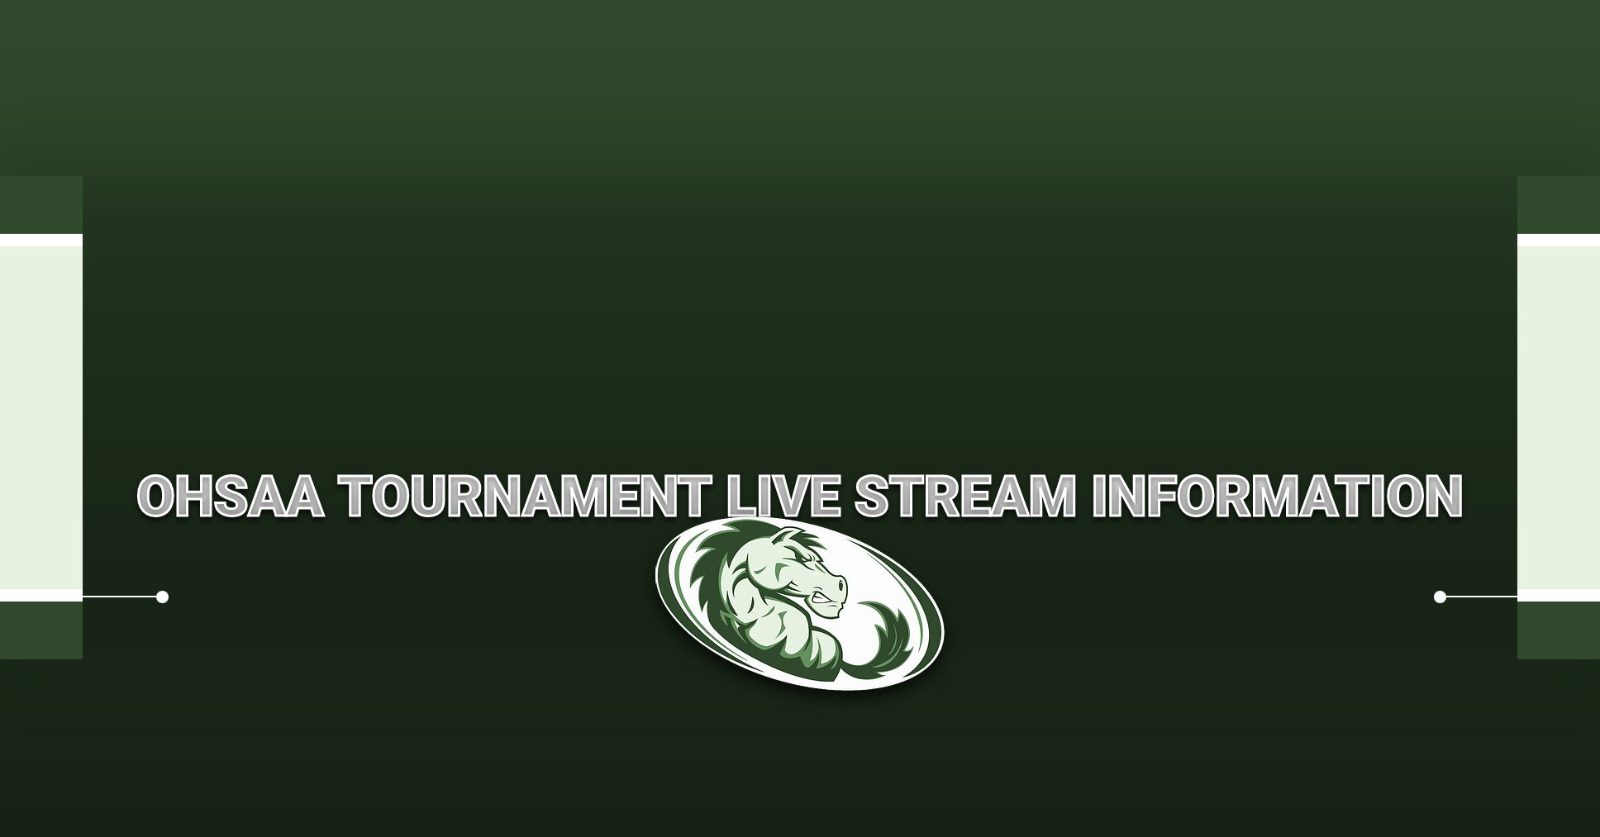 LIVE STREAM INFORMATION FOR OHSAA TOURNAMENT EVENTS